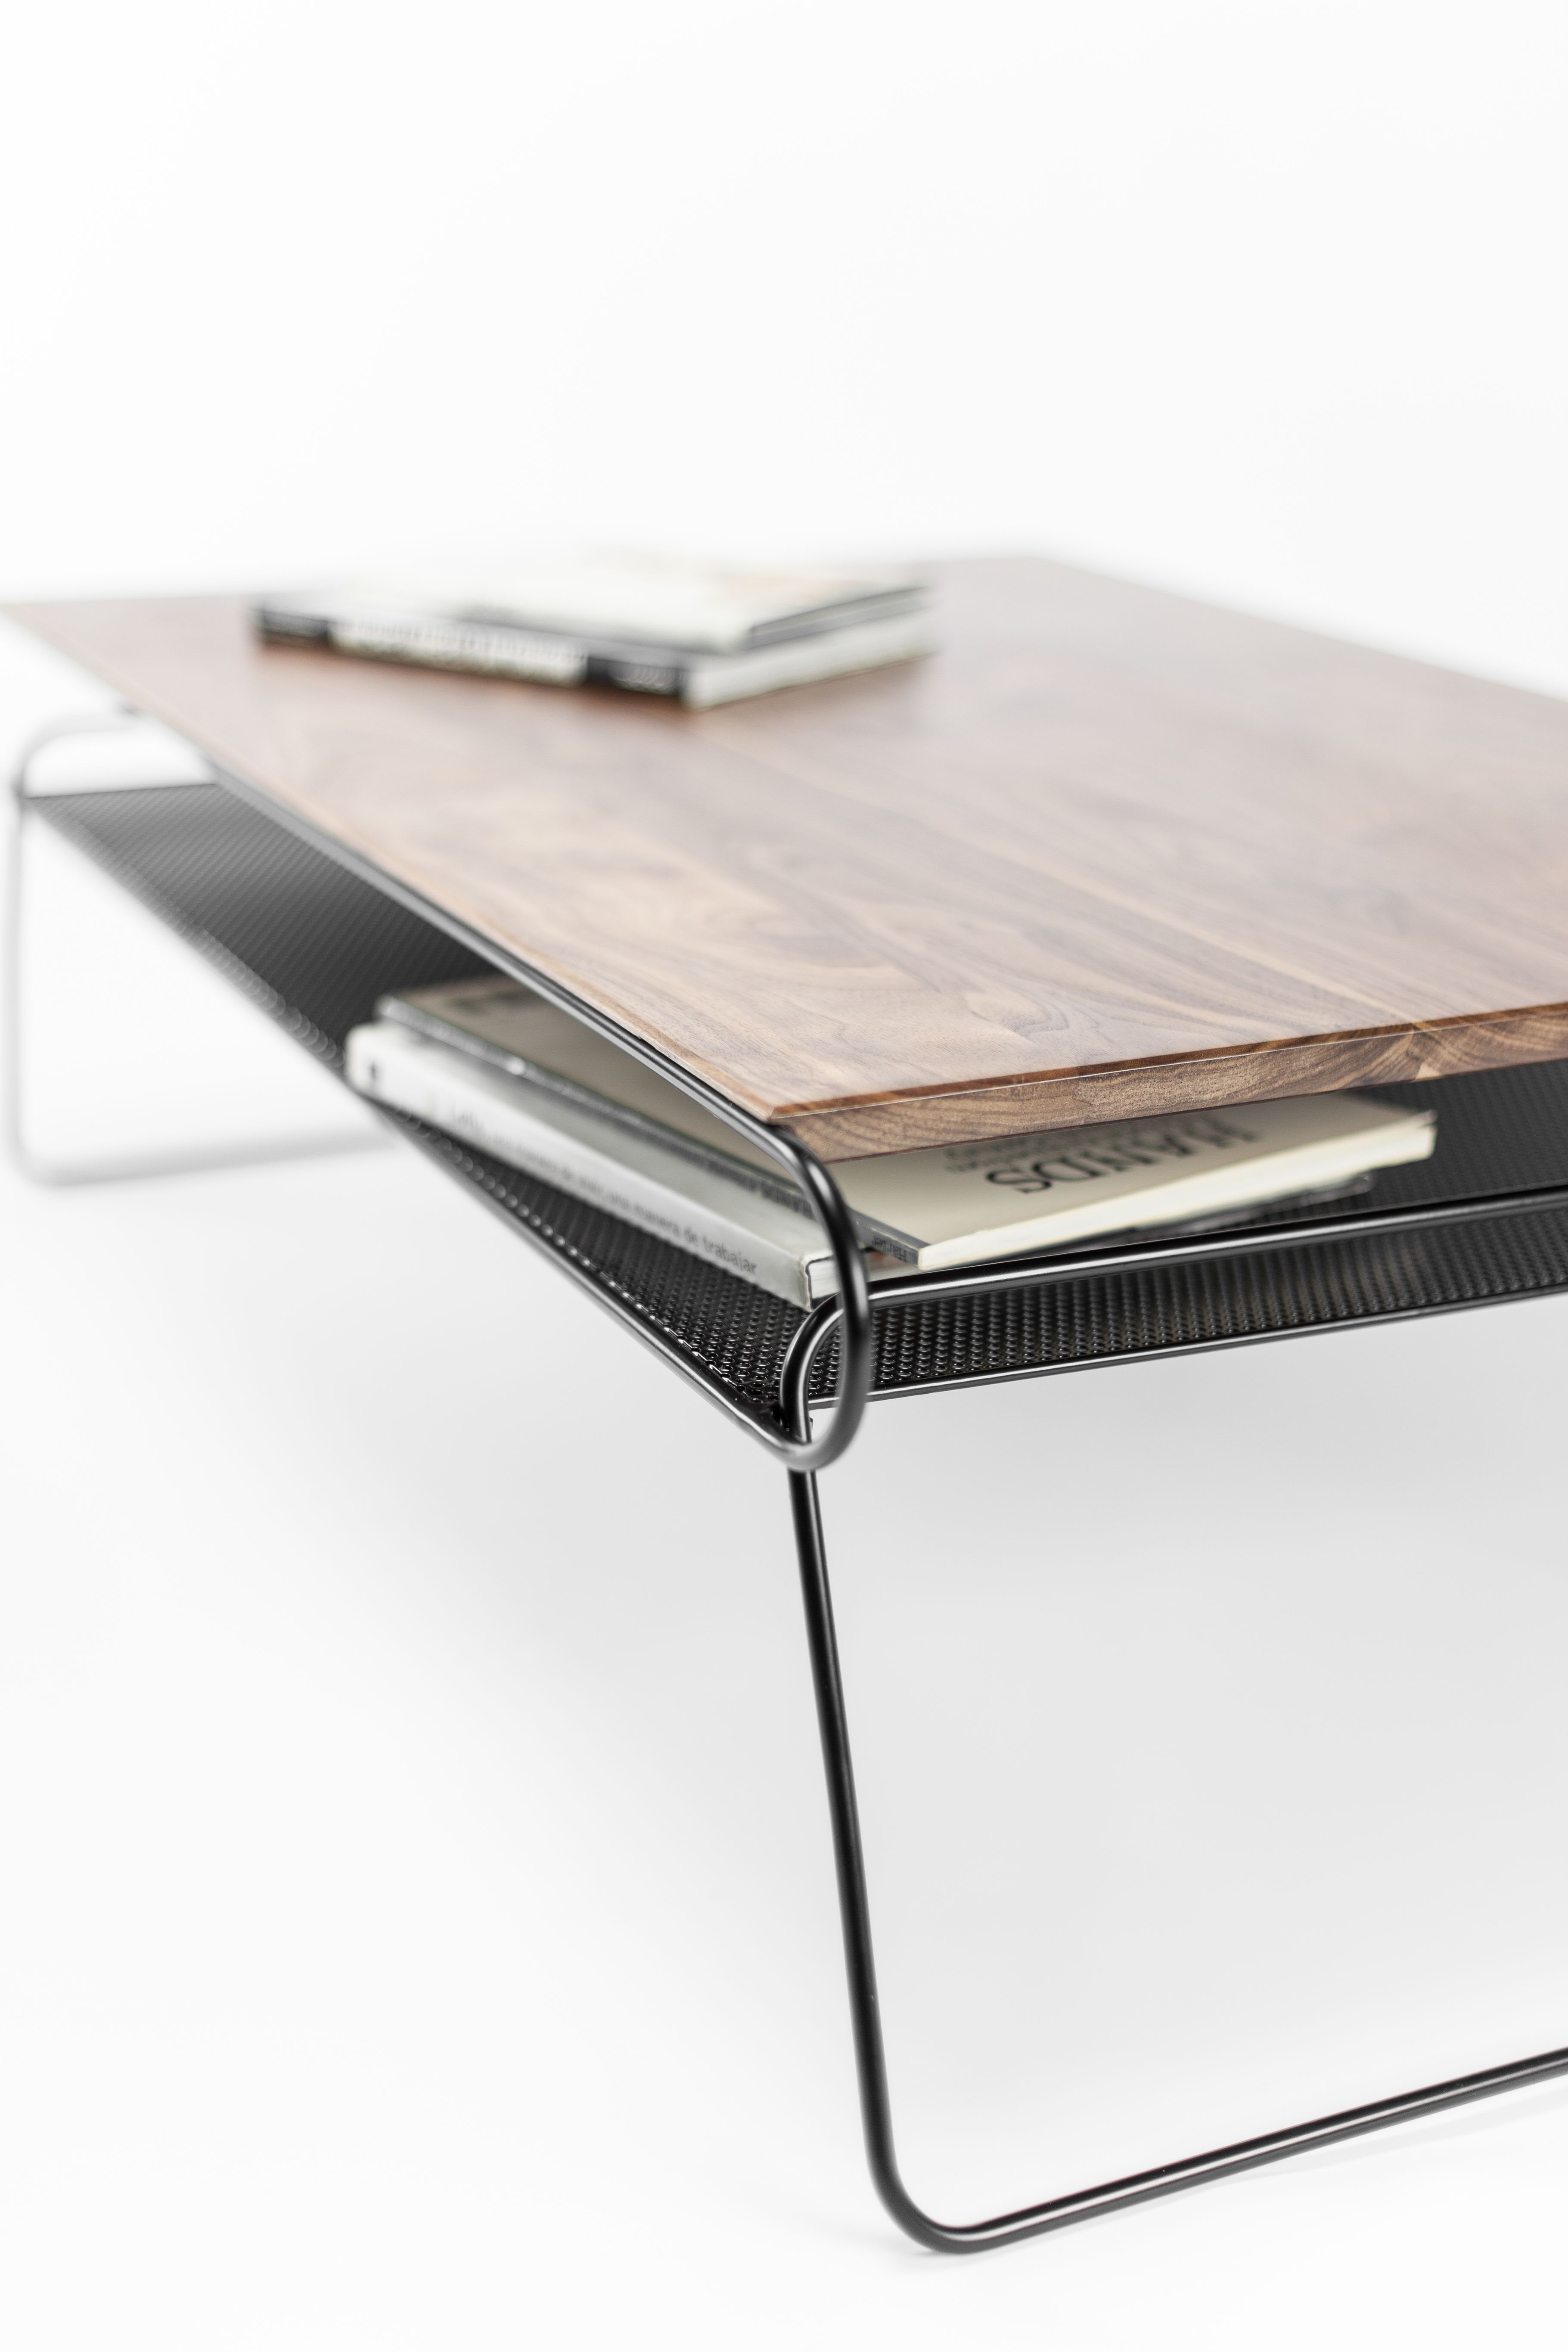 Classic, Mid Century, Modern, Coffee Table / center table / living ...